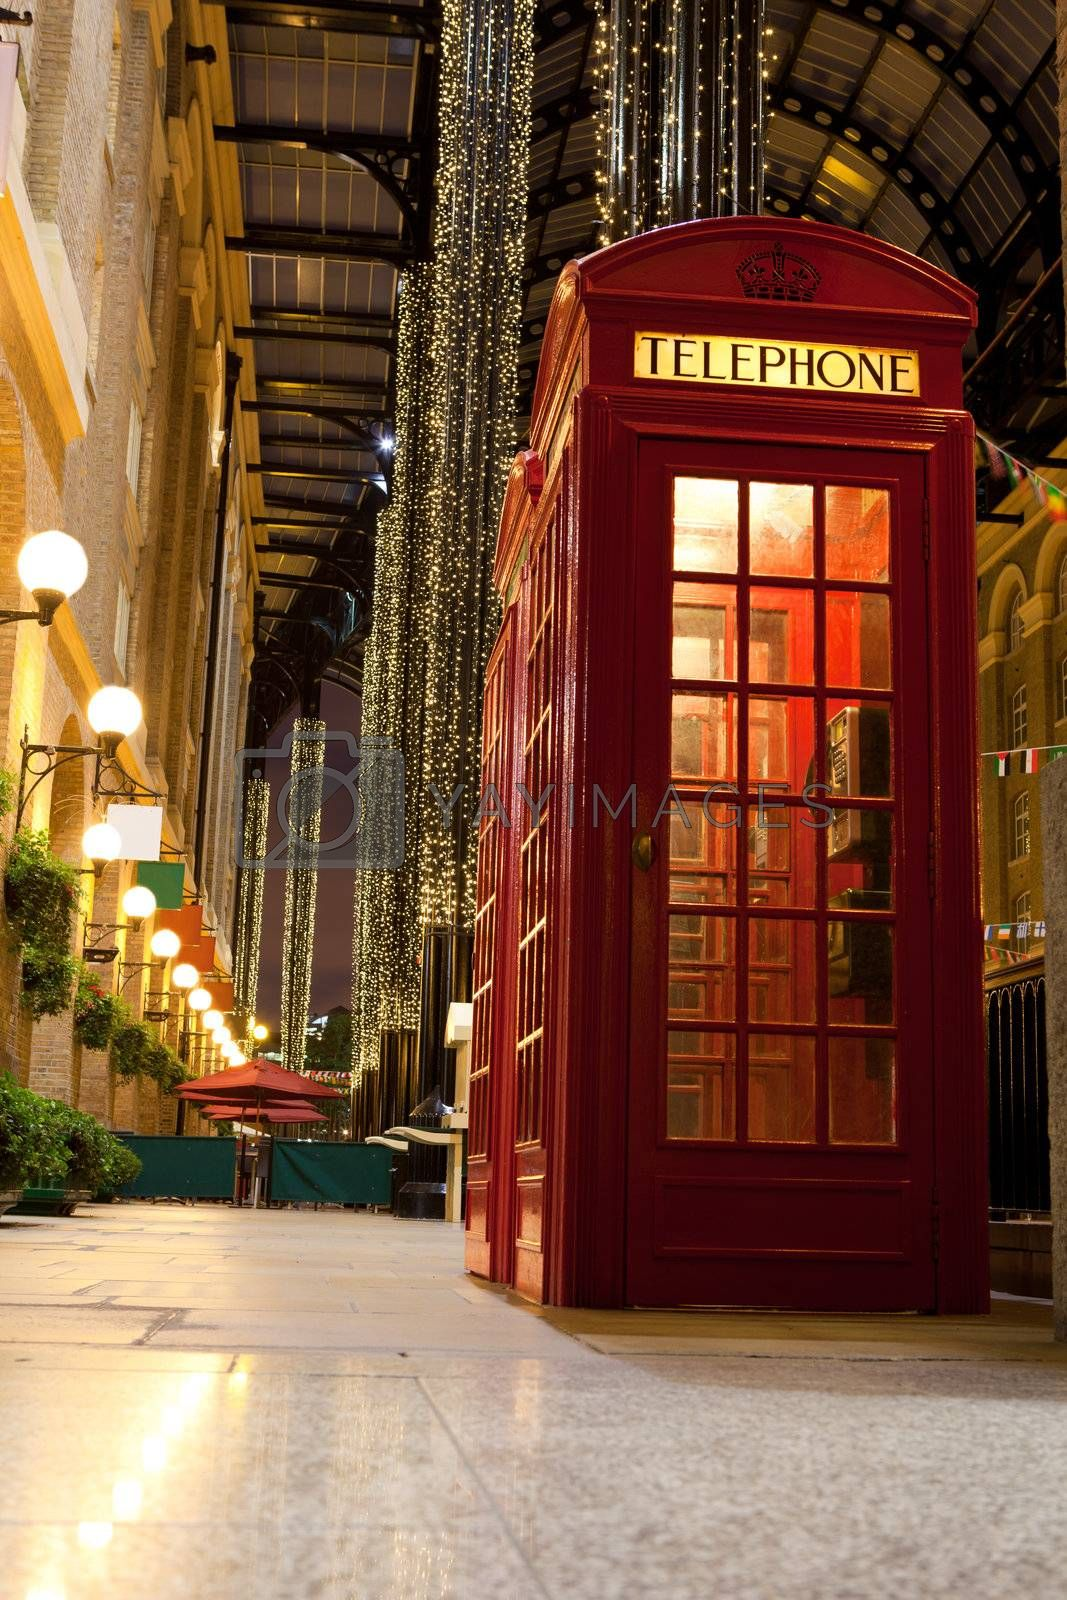 Traditional London symbol red public phone box for calling in illuminated and festively decorated empty trade passage in evening. Great Britain